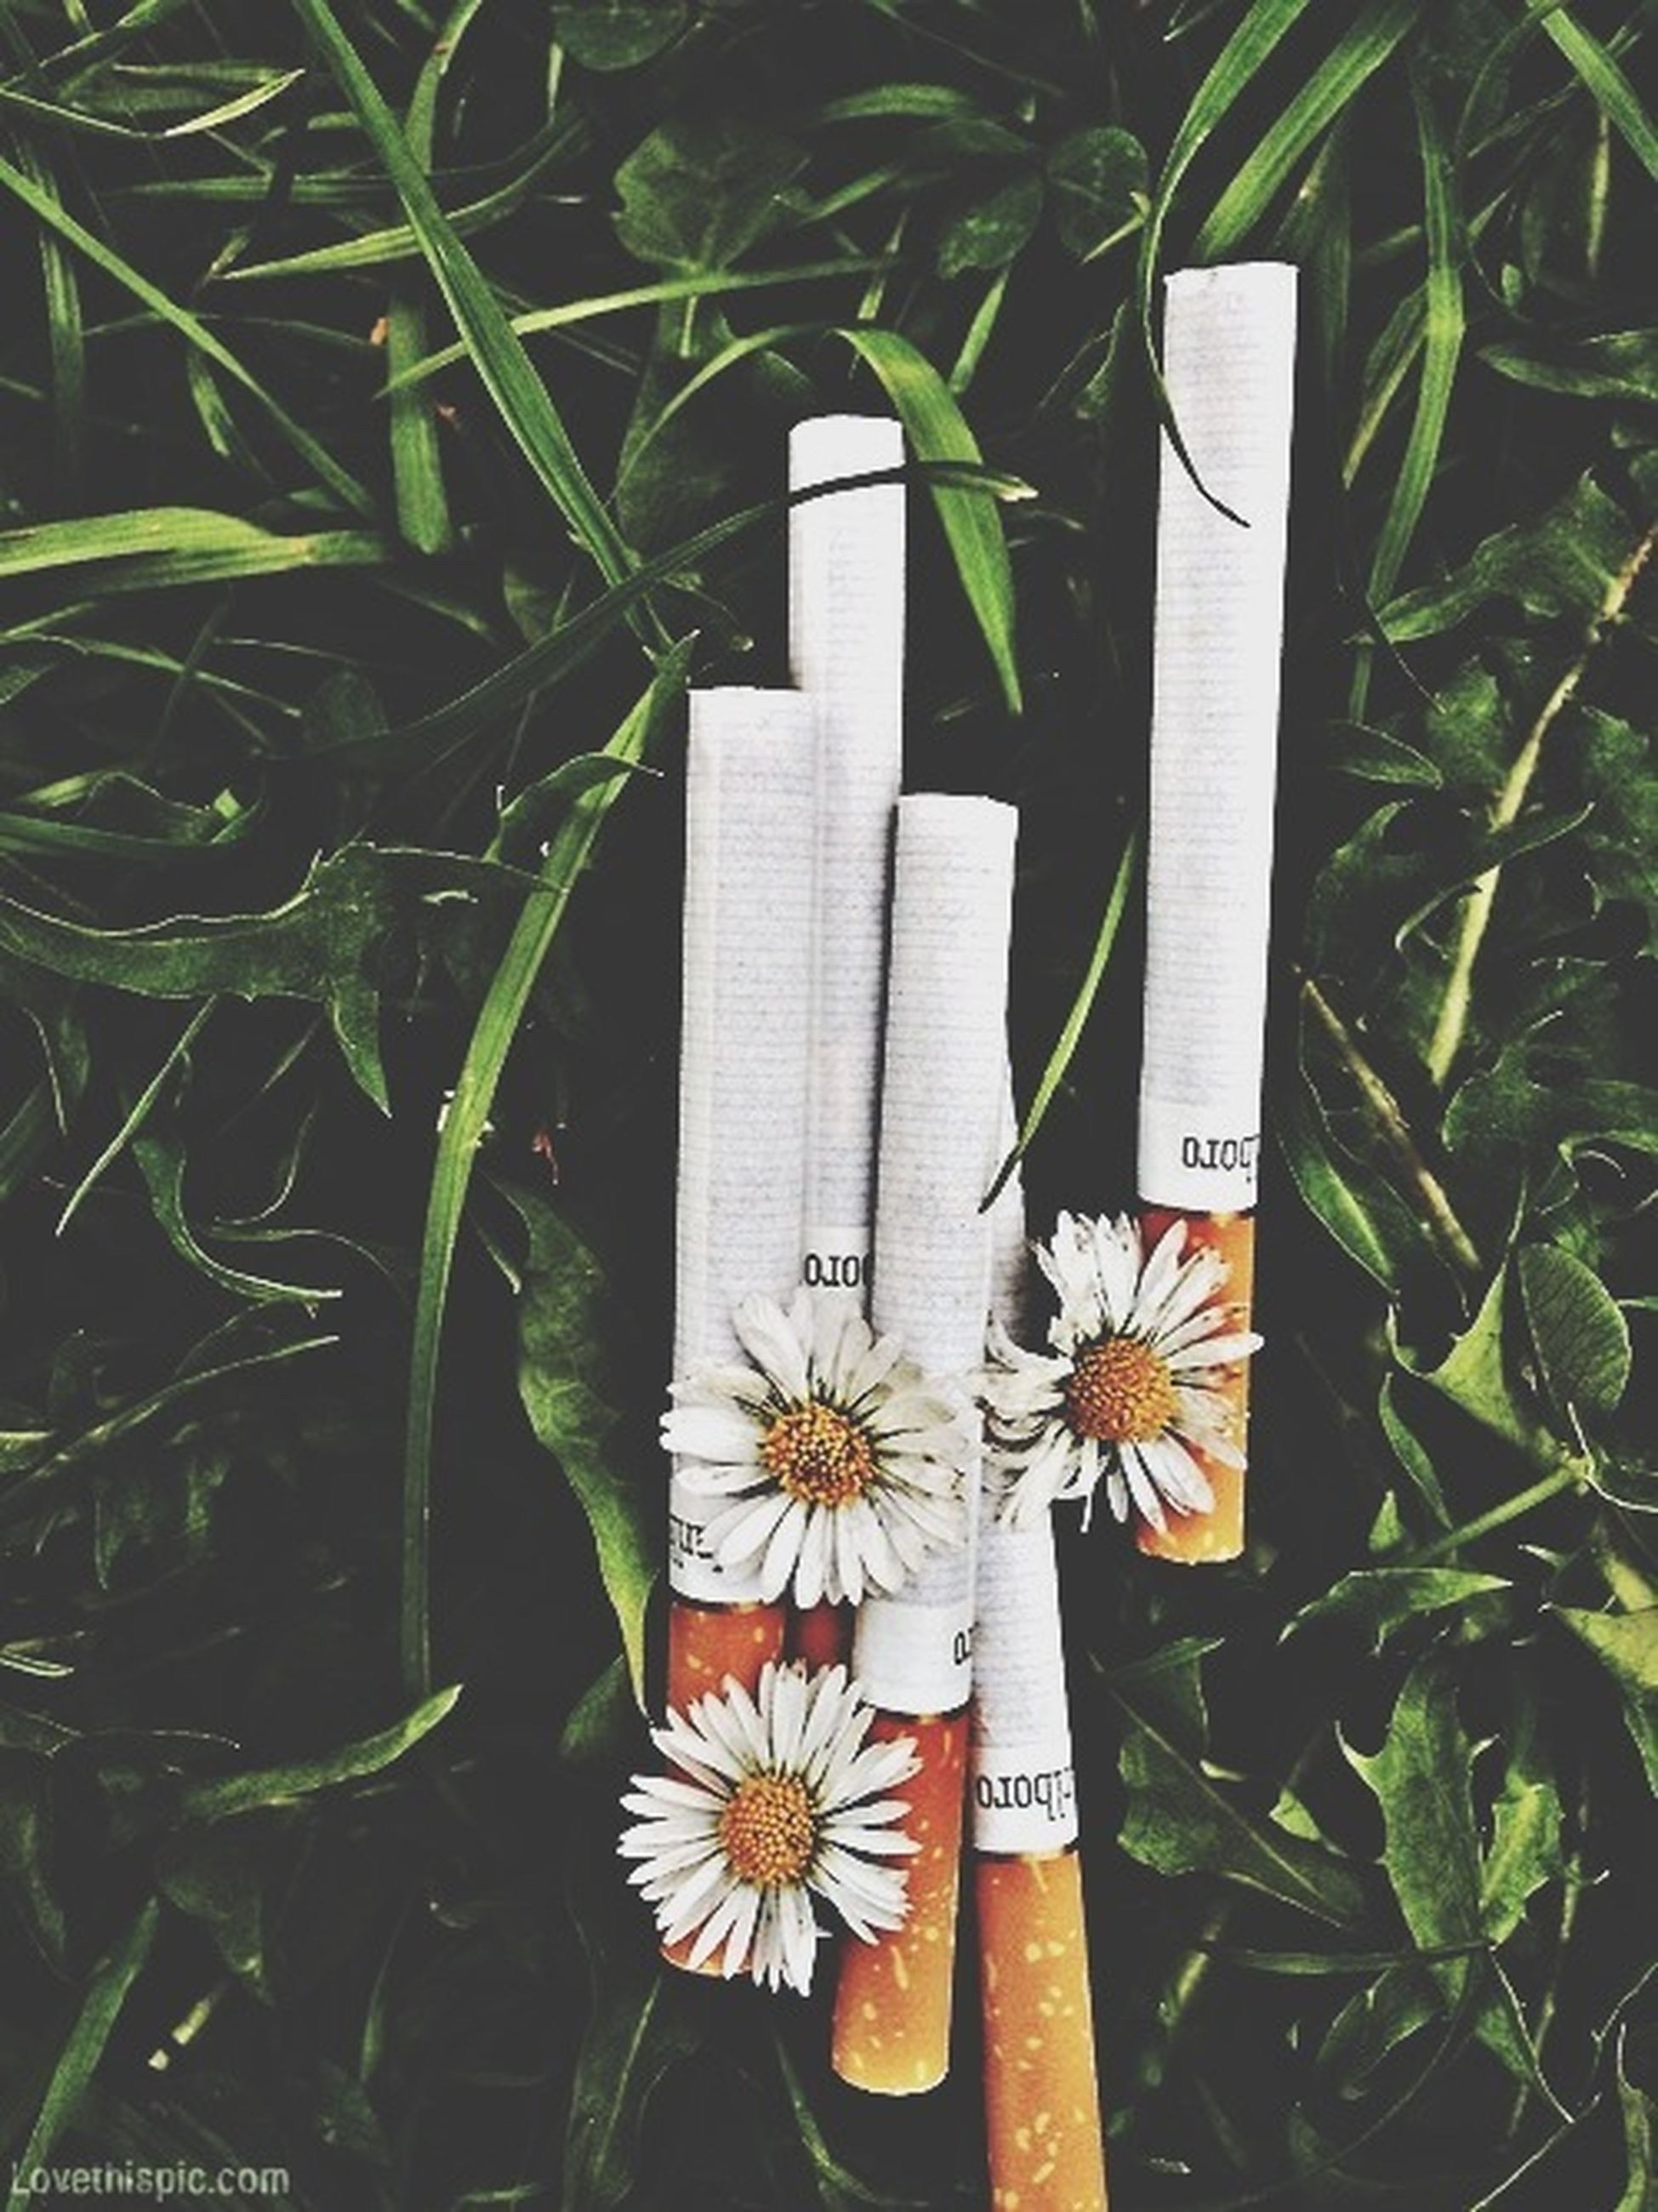 flower, plant, close-up, growth, white color, leaf, high angle view, green color, no people, day, art, outdoors, art and craft, creativity, petal, nature, human representation, focus on foreground, grass, fragility